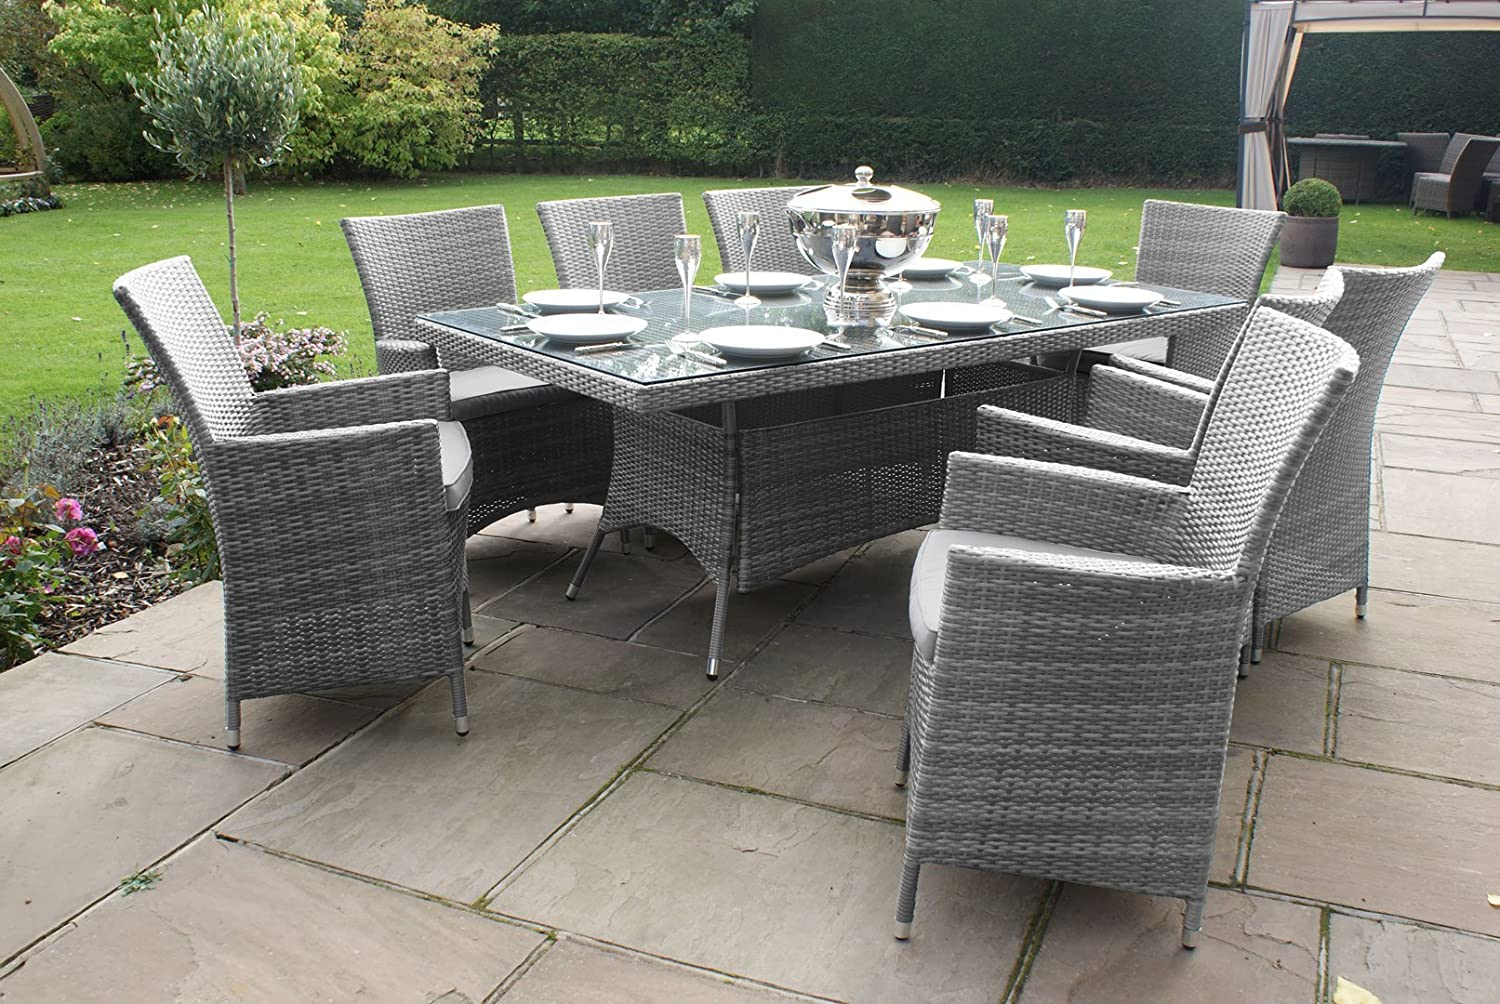 Maze Rattan LA 8 Seater Rectangular Garden Furniture Dining Set   Grey    Inc Free Parasol: Amazon.co.uk: Kitchen U0026 Home Part 37